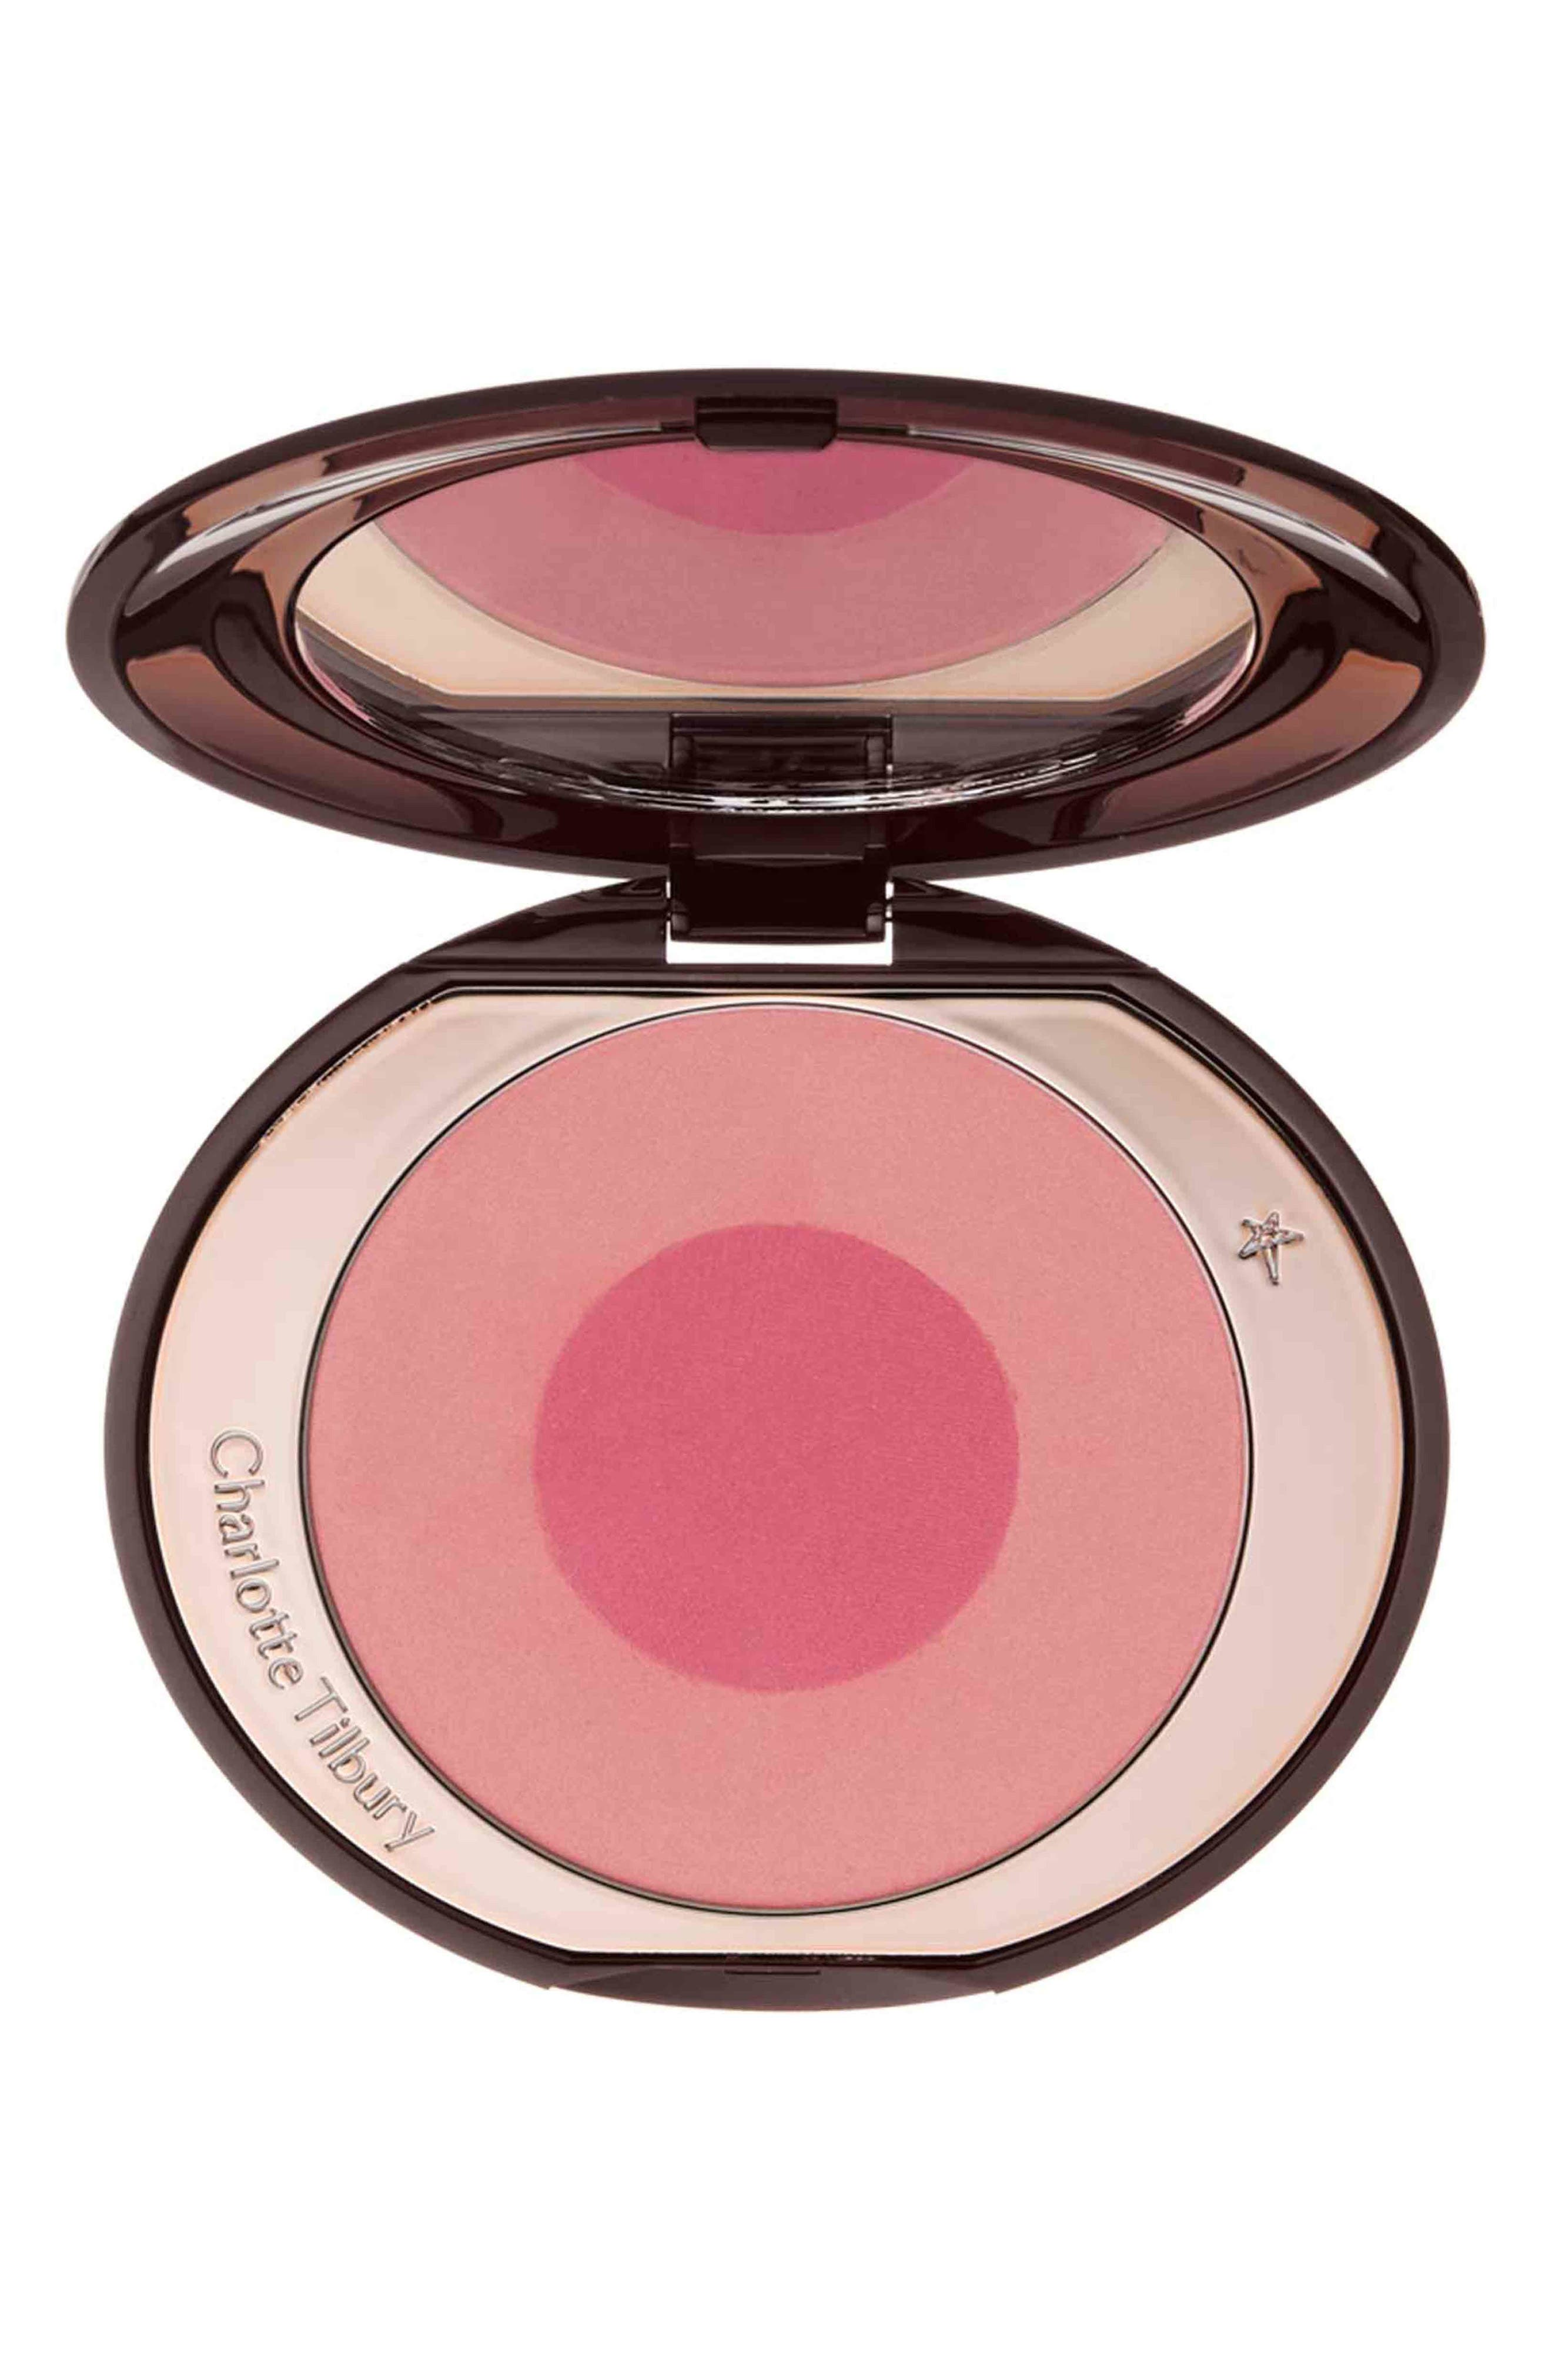 Cheek to Chic Blush,                             Main thumbnail 1, color,                             LOVE IS THE DRUG